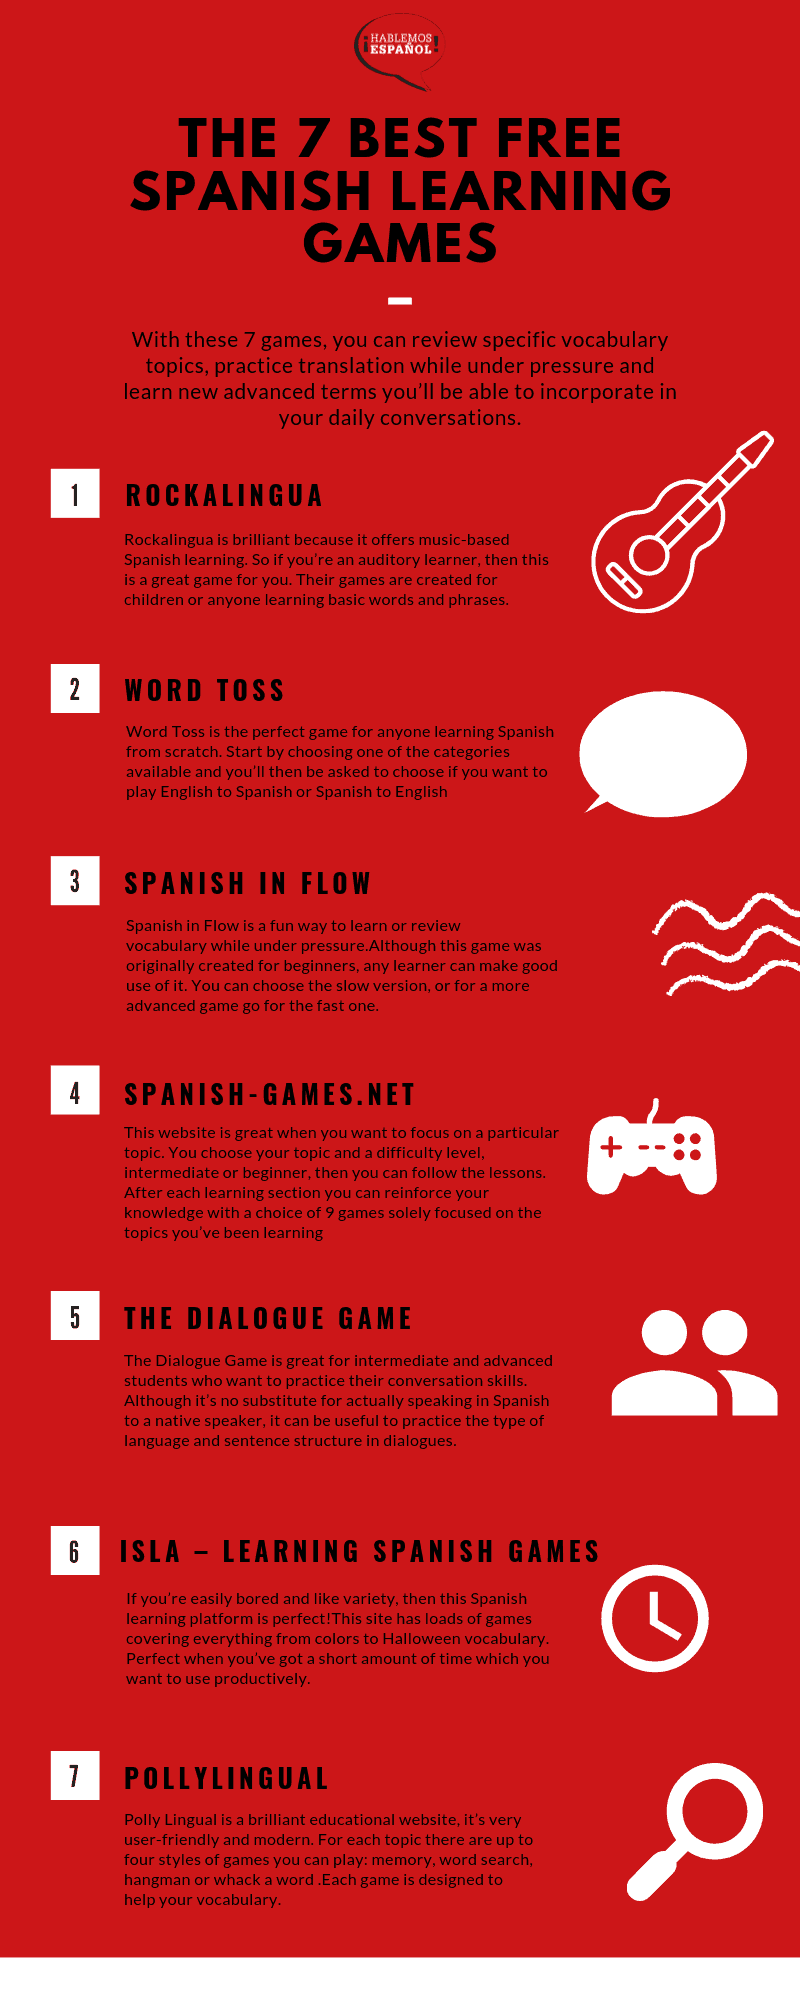 the 7 best free spanish learning games infographic